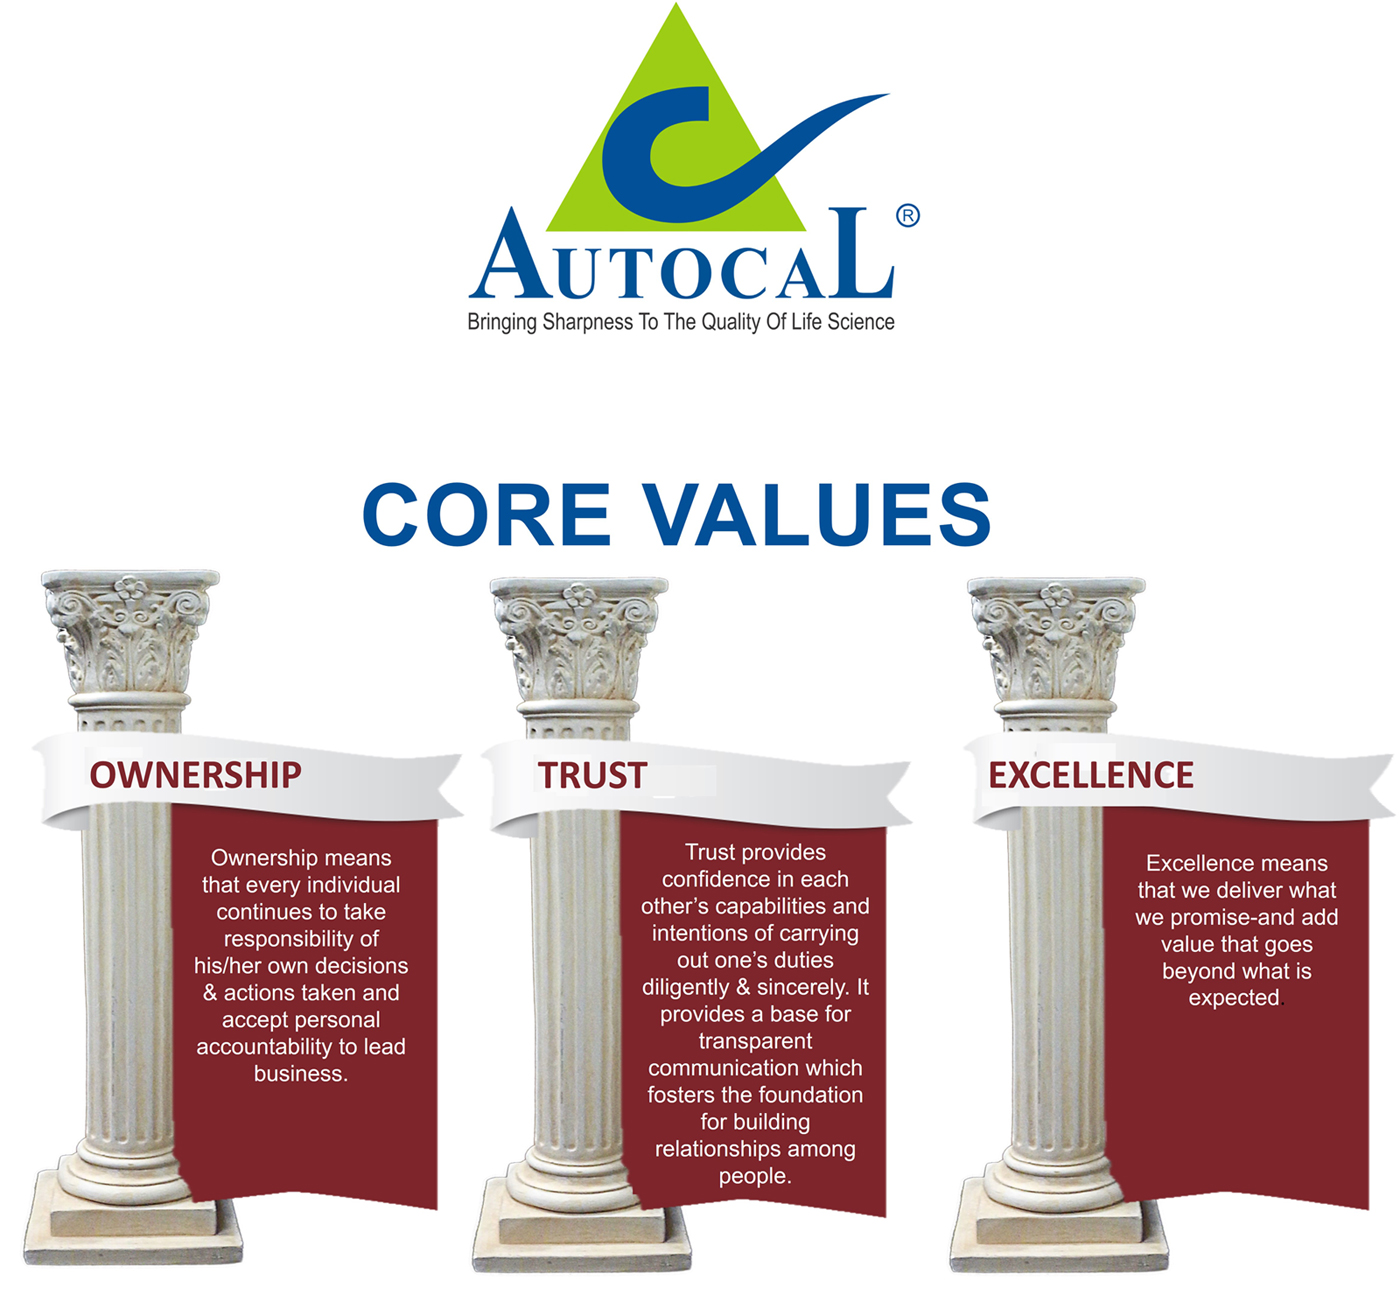 no rules but we are guided by a few core values